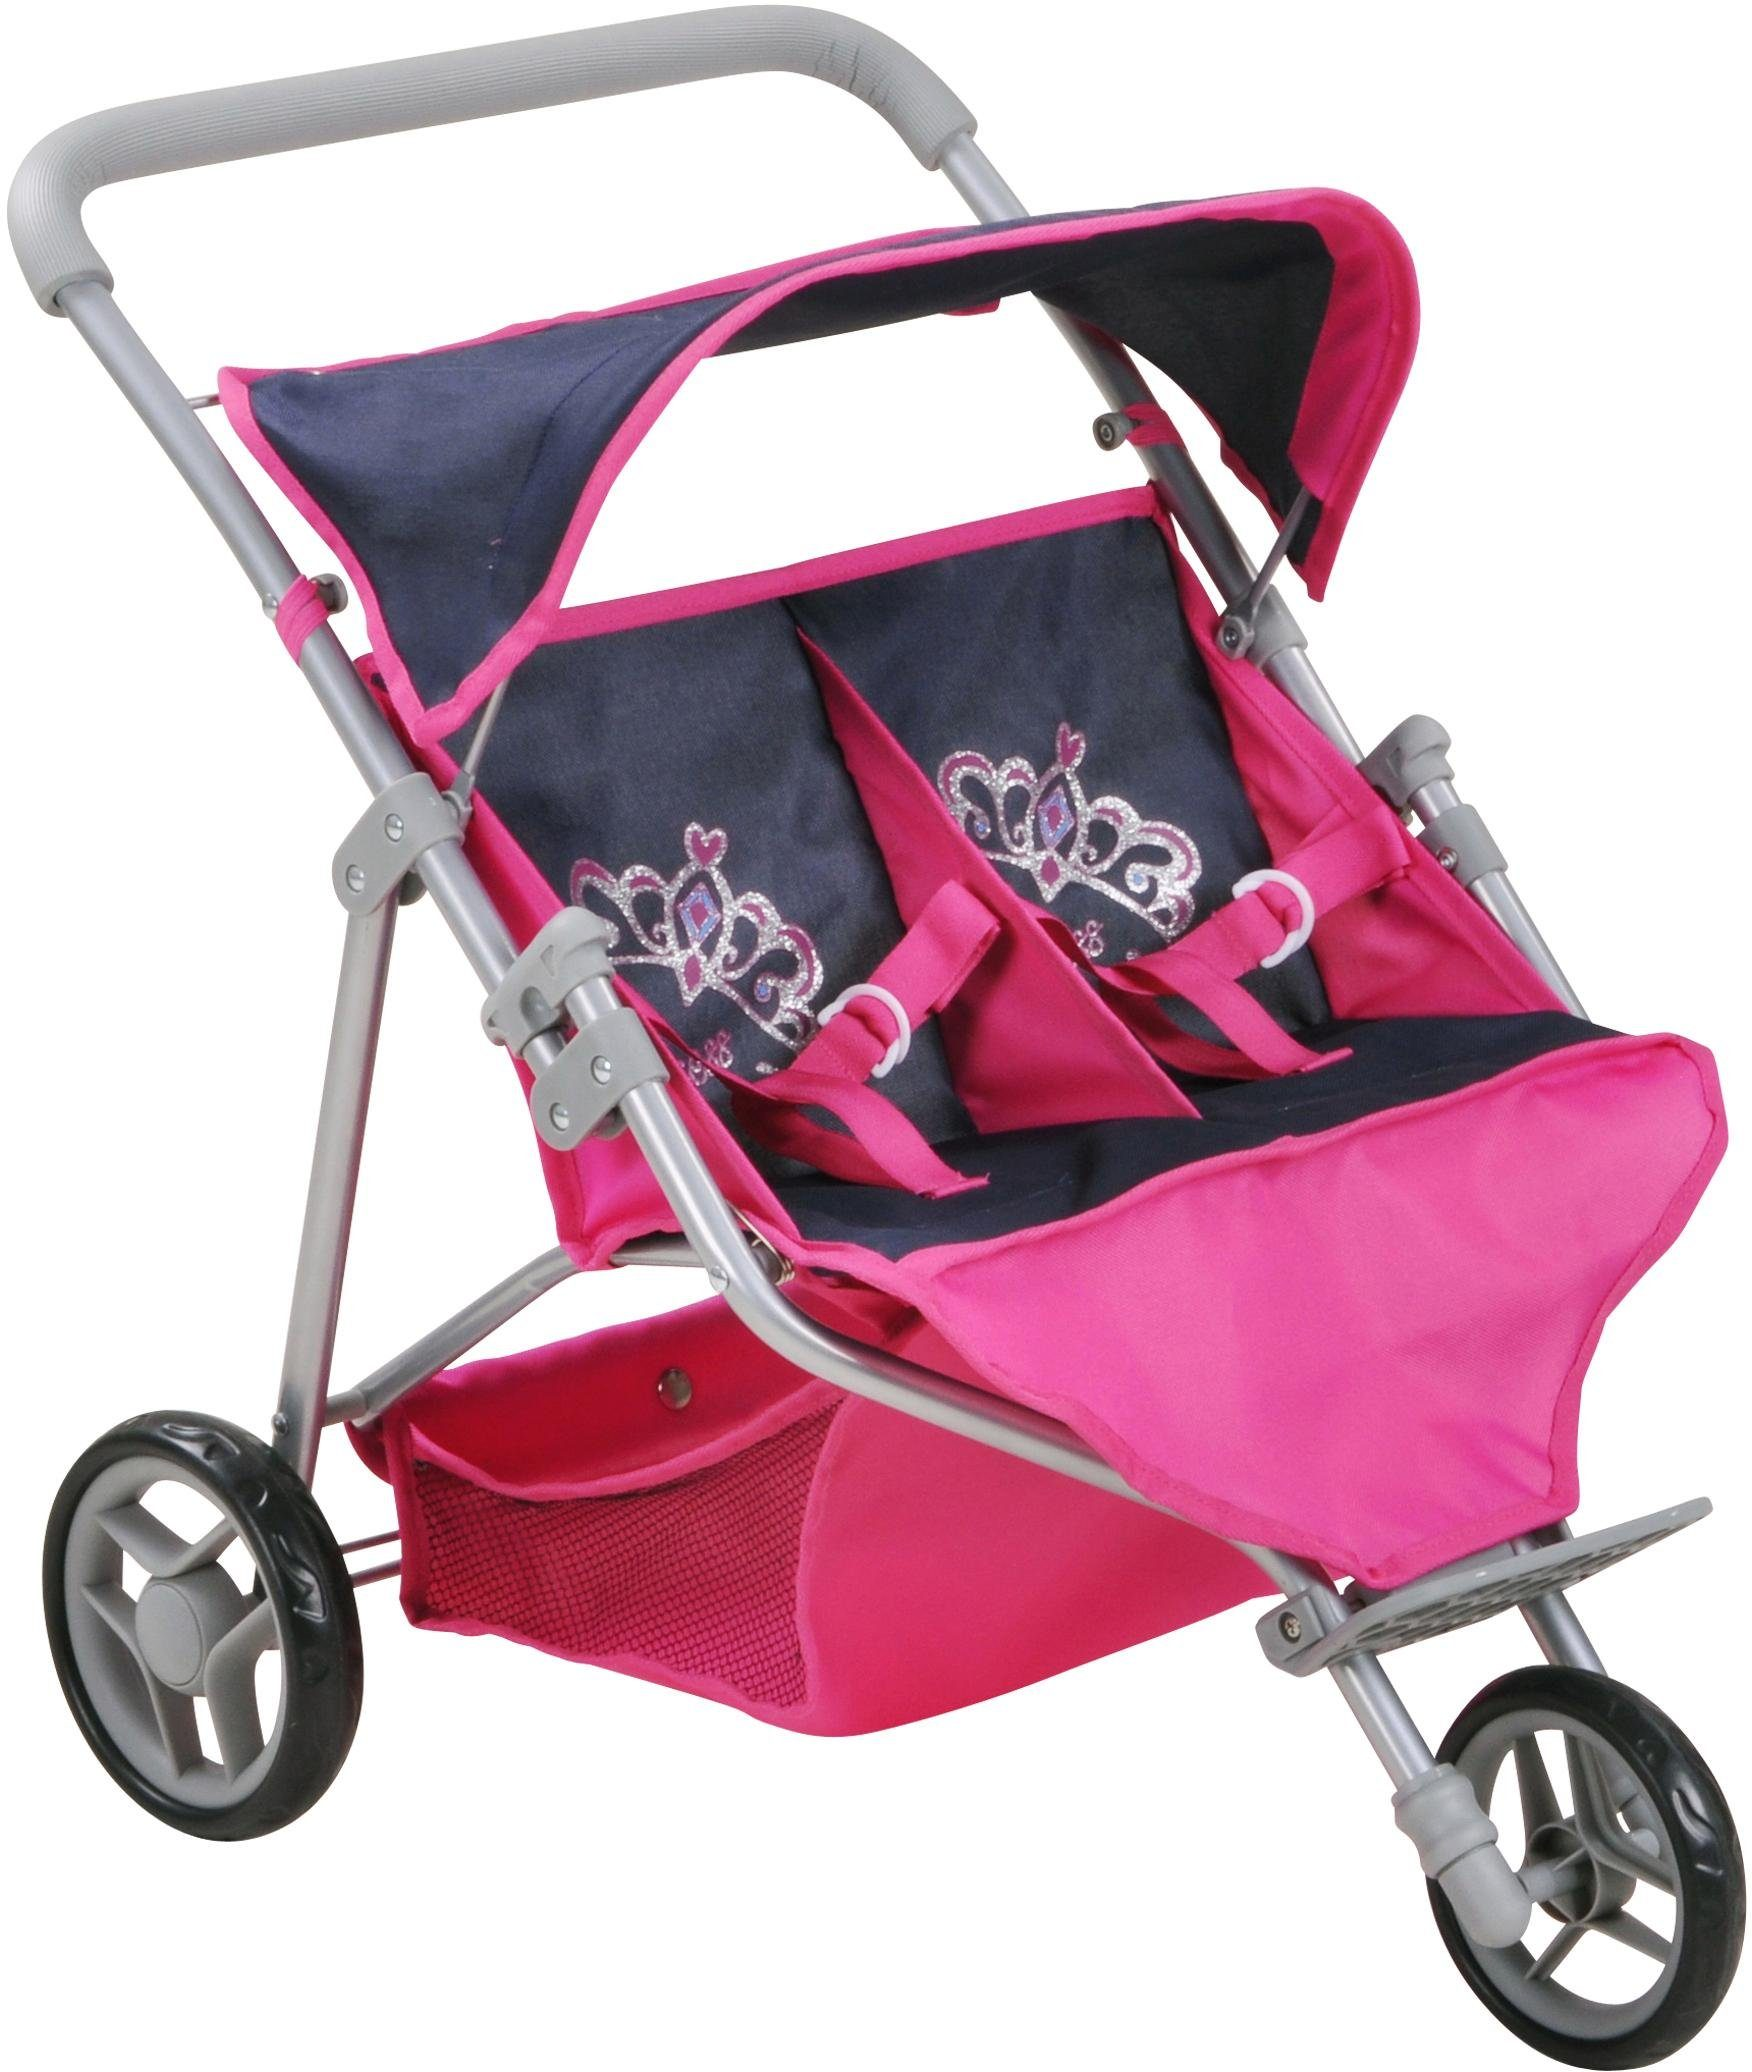 knorr toys Zwillings-Puppenwagen, »Duo - diadem «